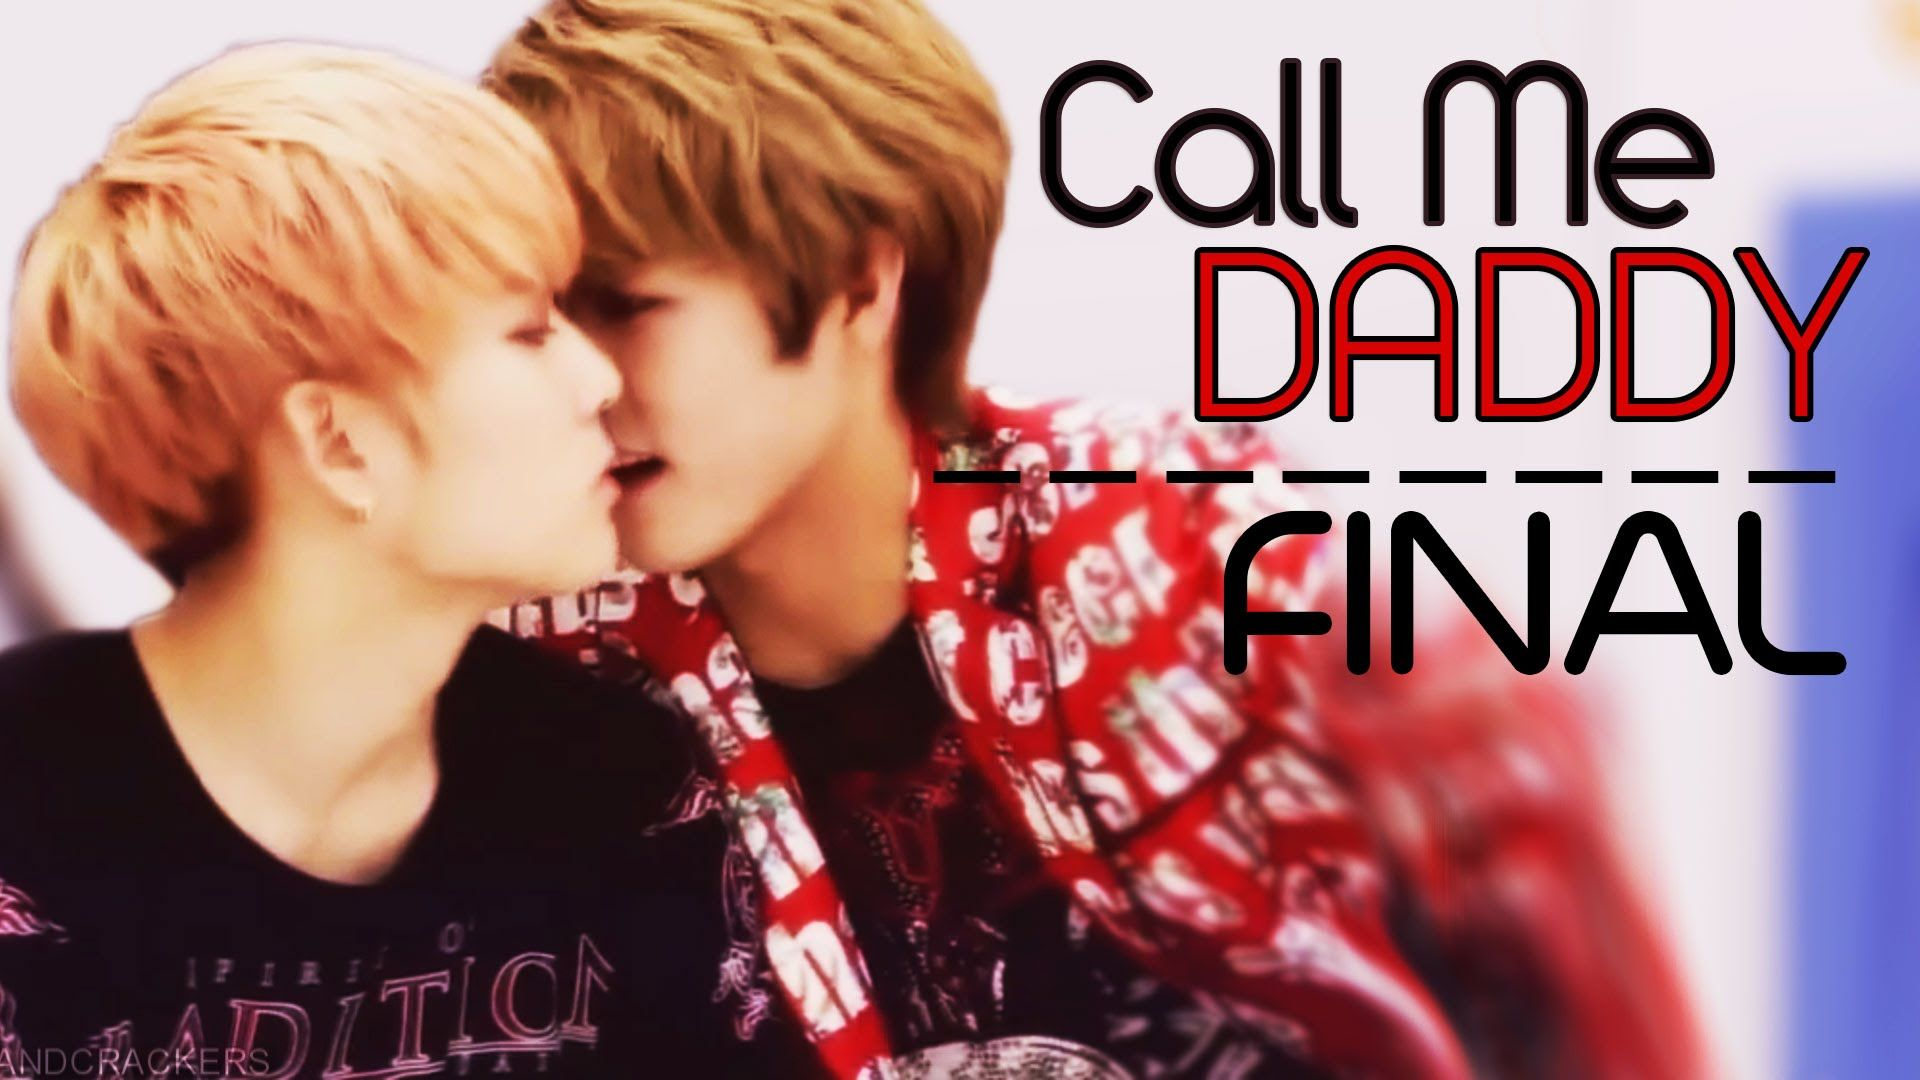 [18+] K-pop Sexual Tension | Call Me Daddy - FINAL [YAOI]